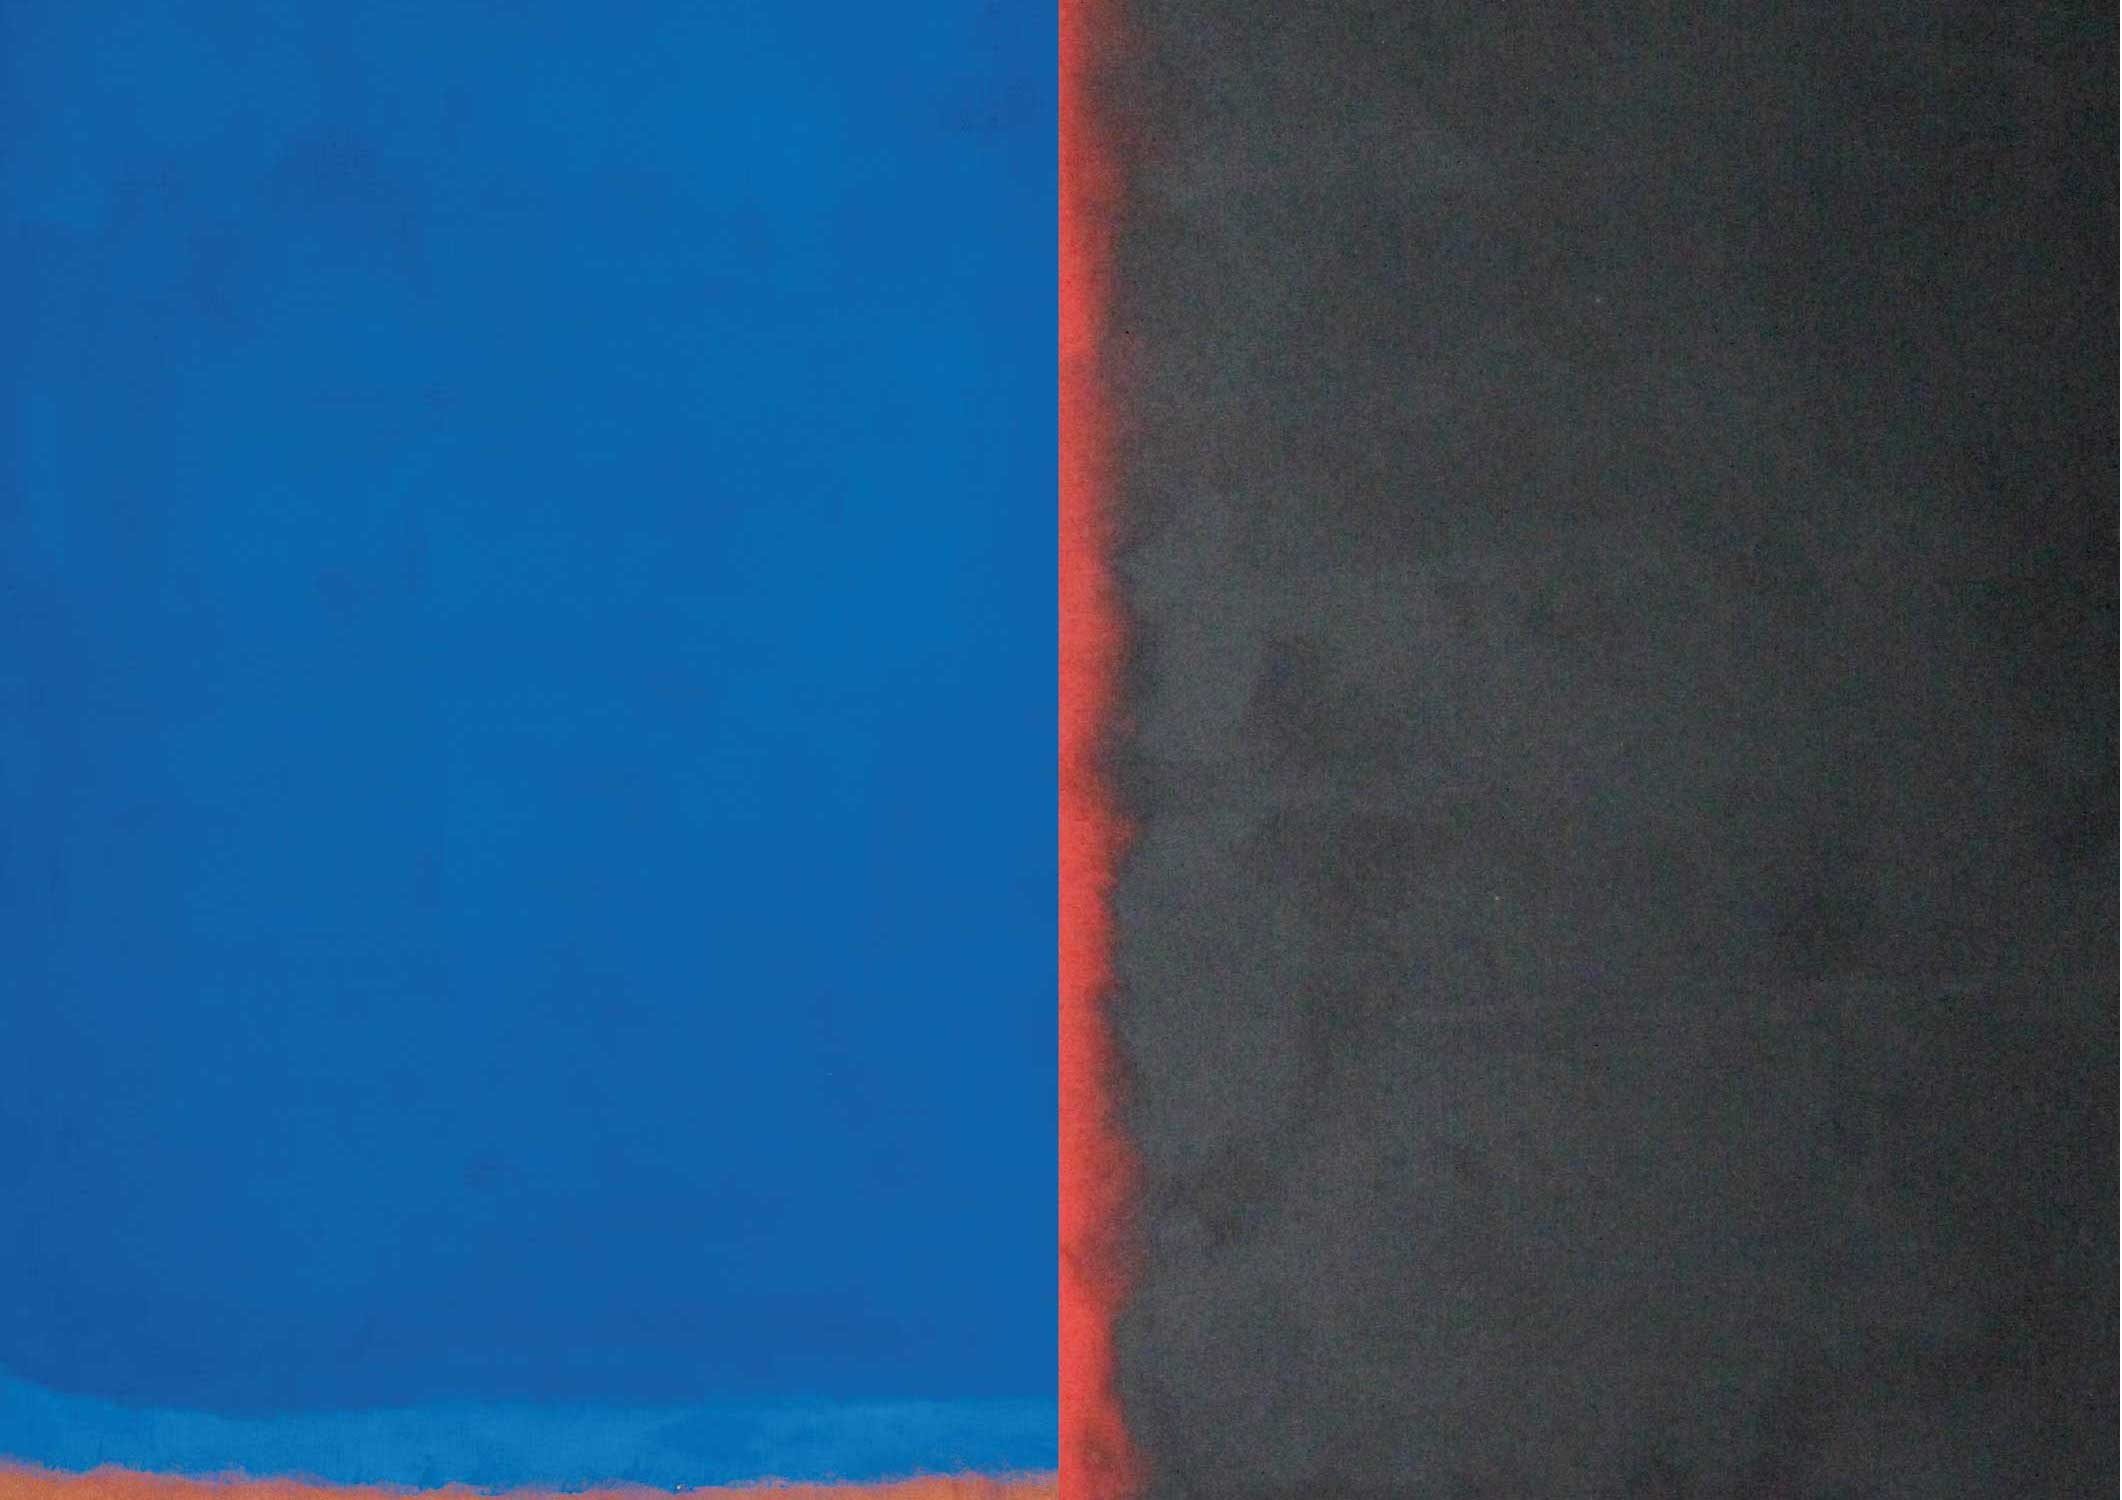 Best_Optyk_Rothko-Blue-and-Black.jpg